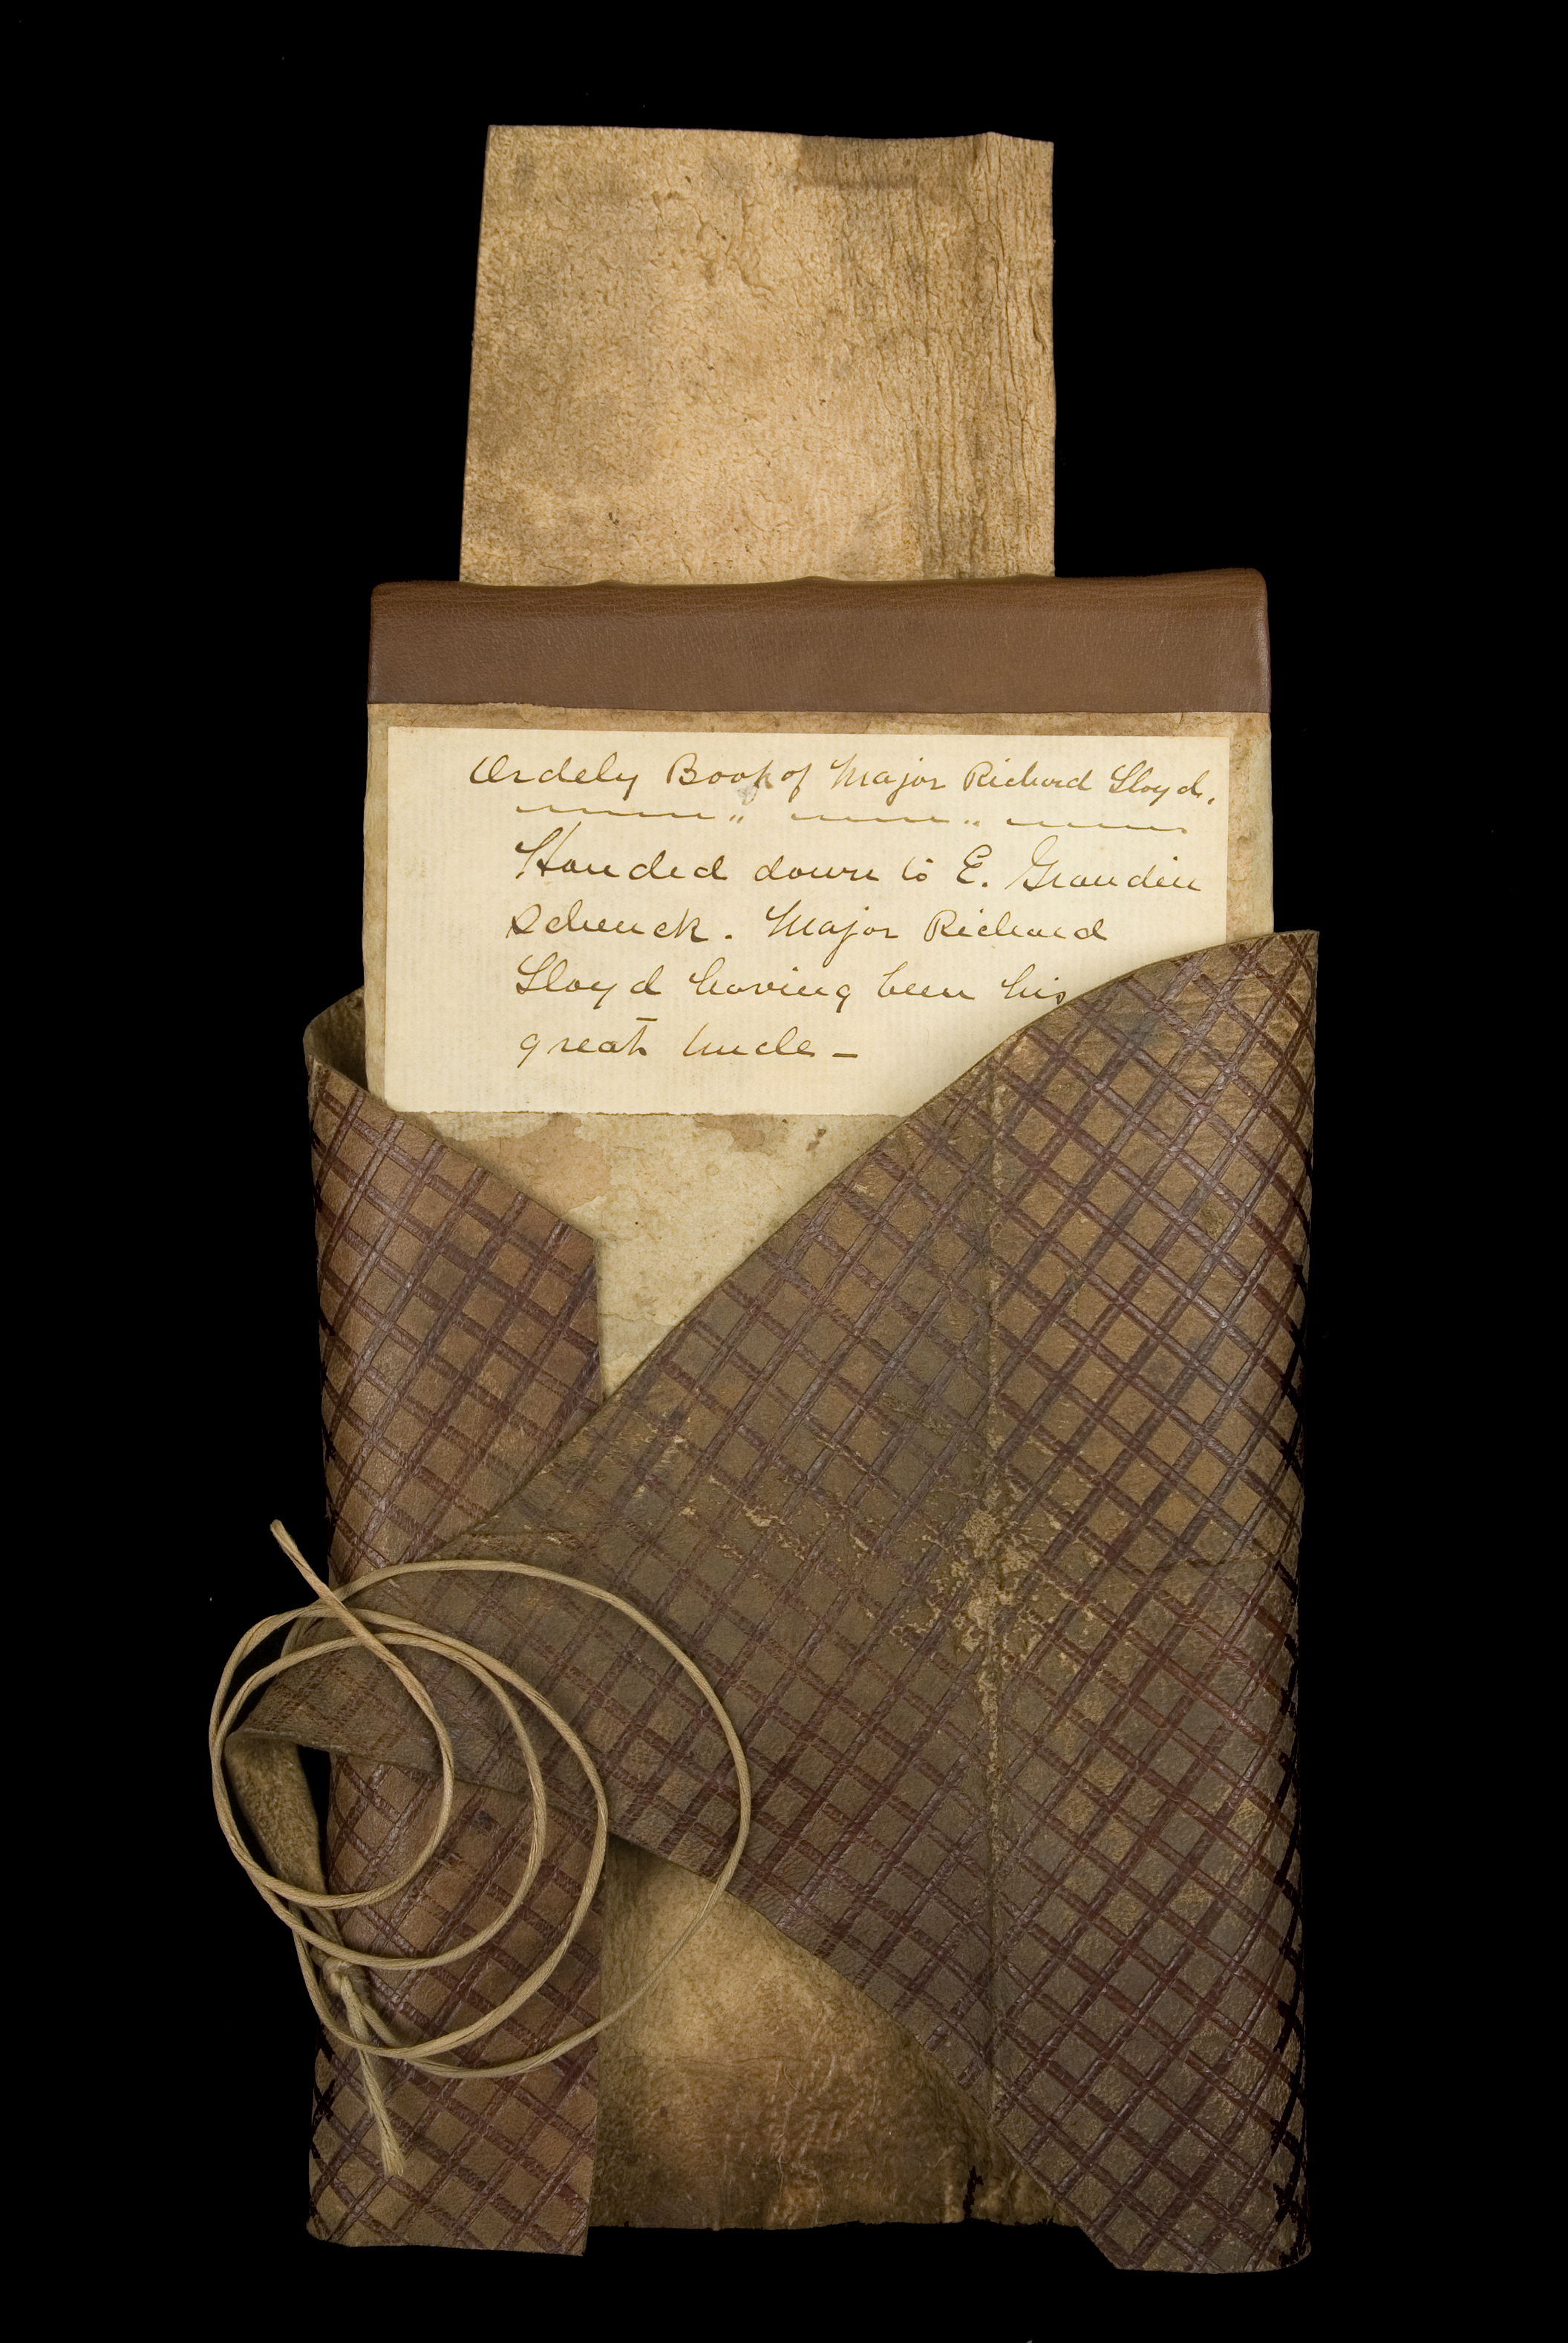 Orderly book of the New Hampshire Brigade kept by Richard Lloyd, Fishkill, West Point, Paramus, Morristown and elsewhere, October 5, 1780-March 5, 1781